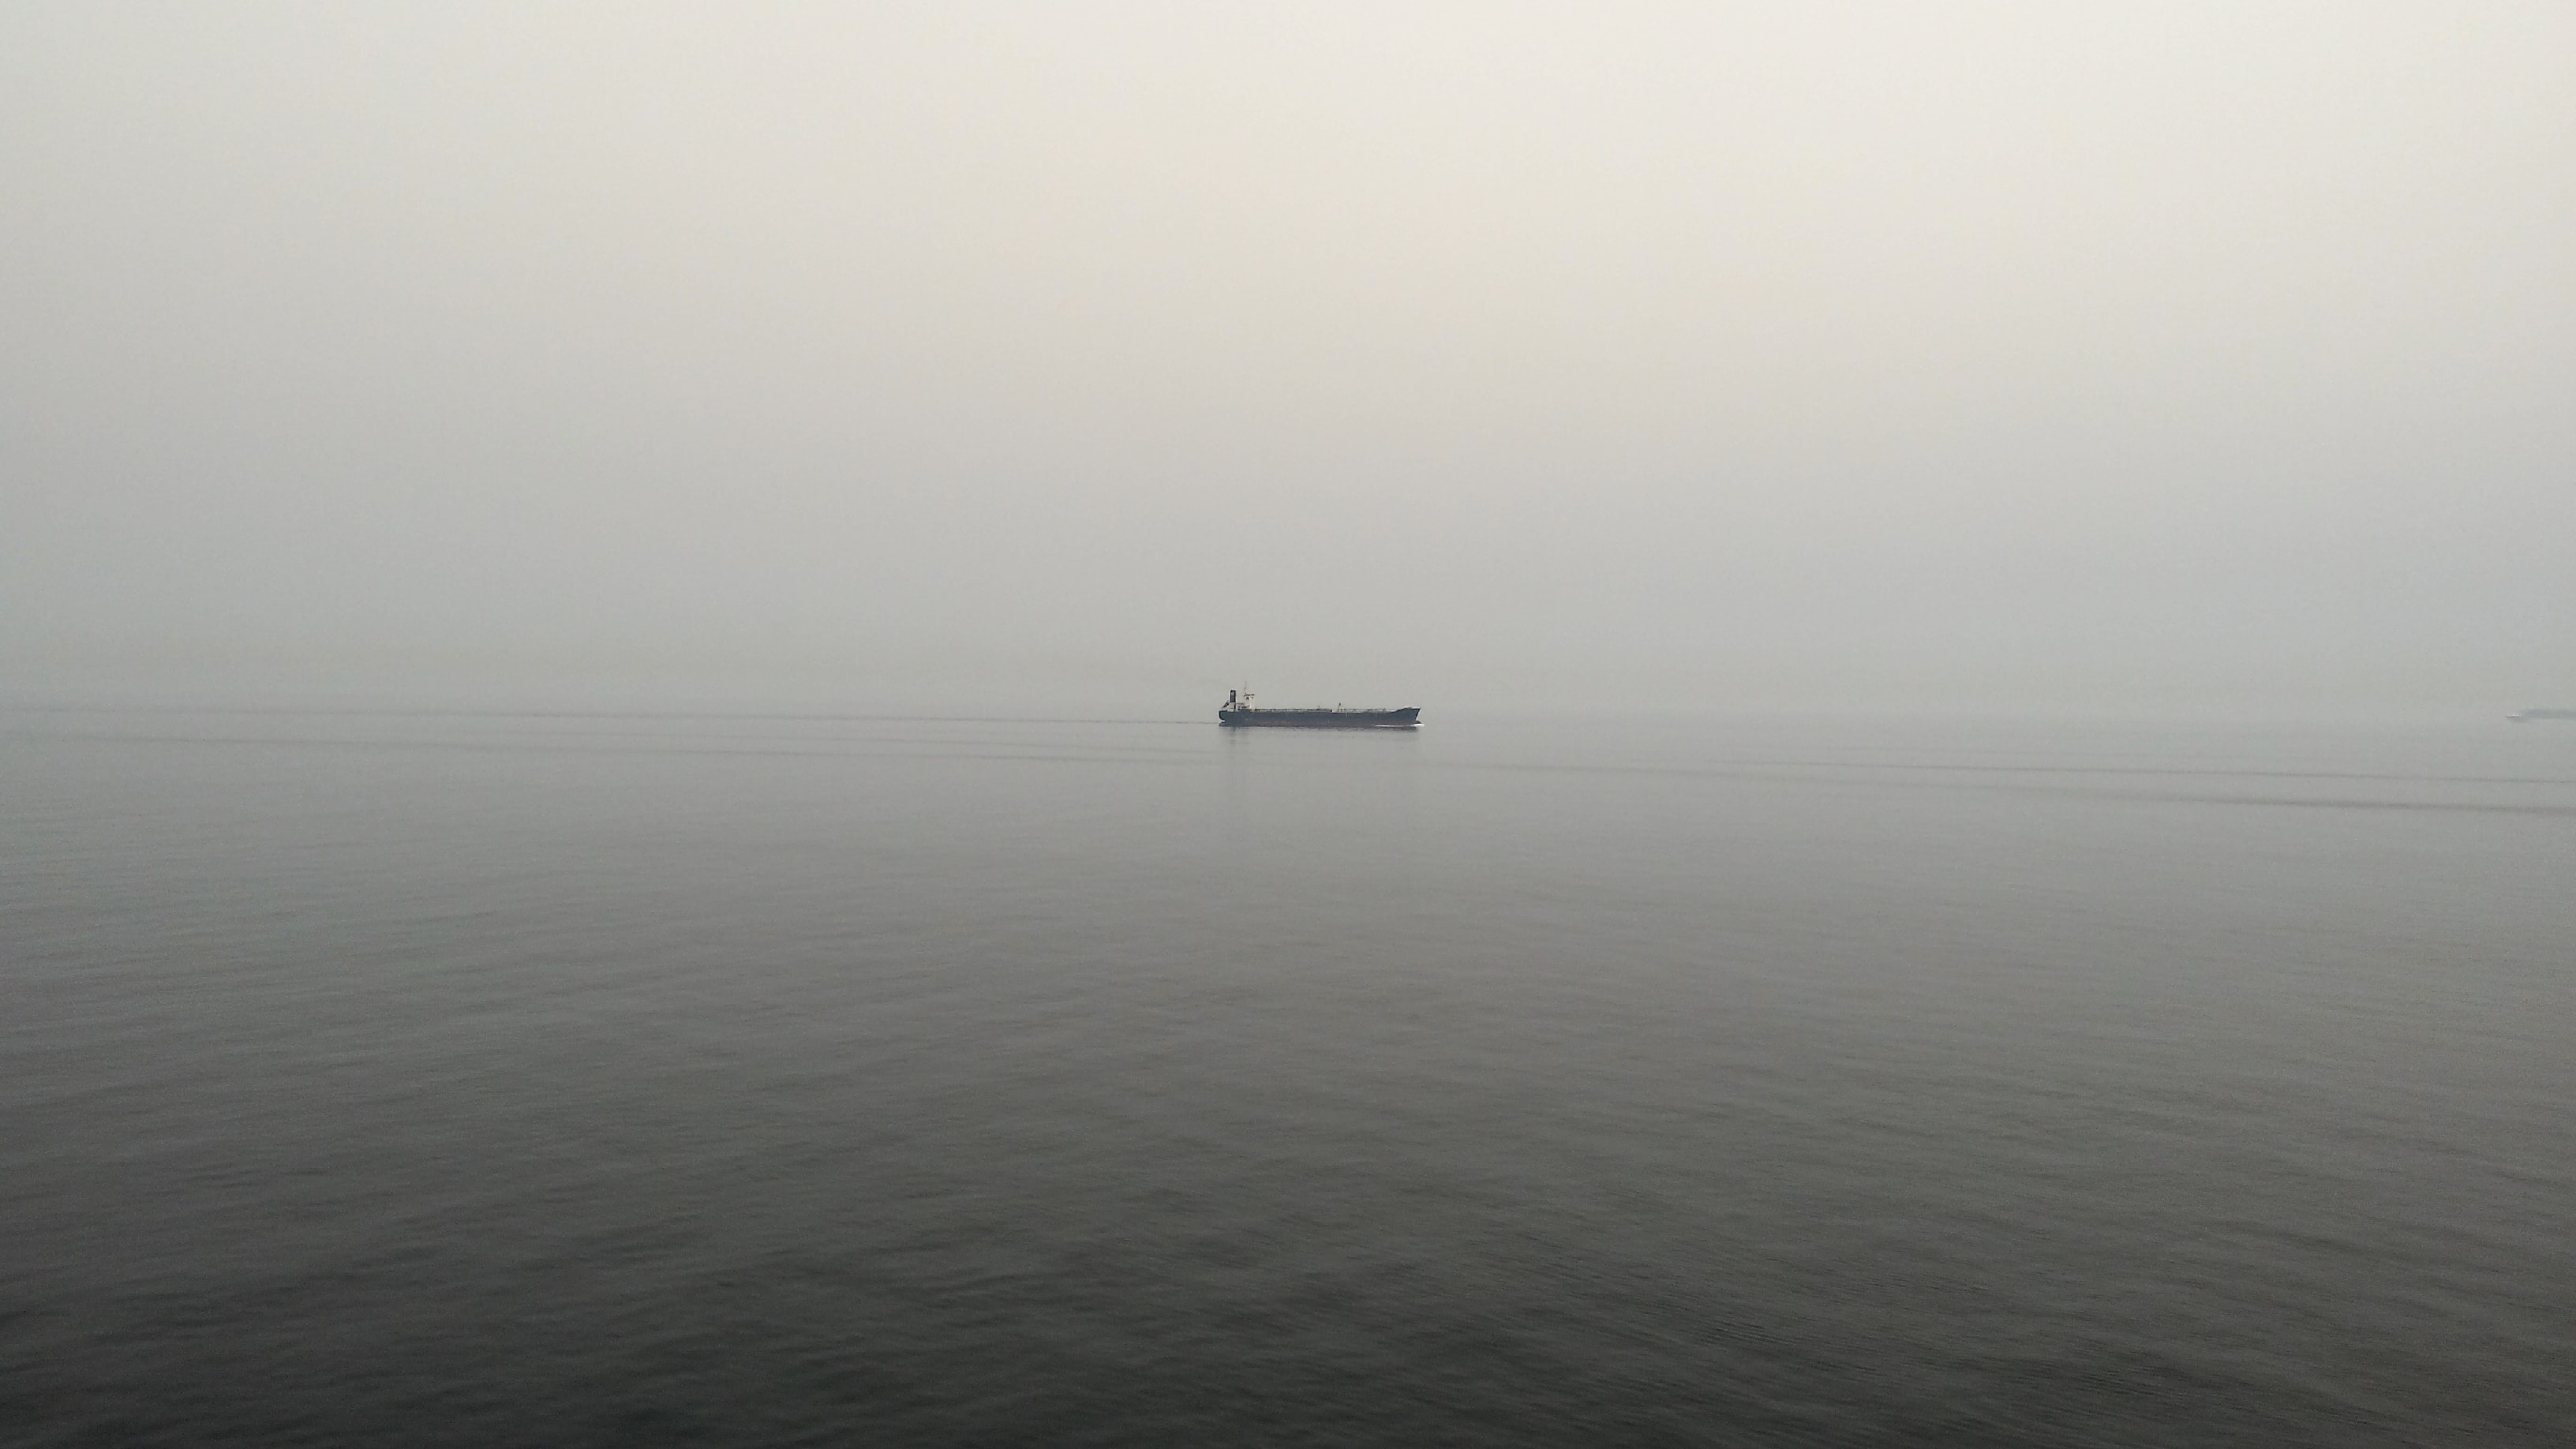 Boat alone on calm gray waters on an overcast foggy morning